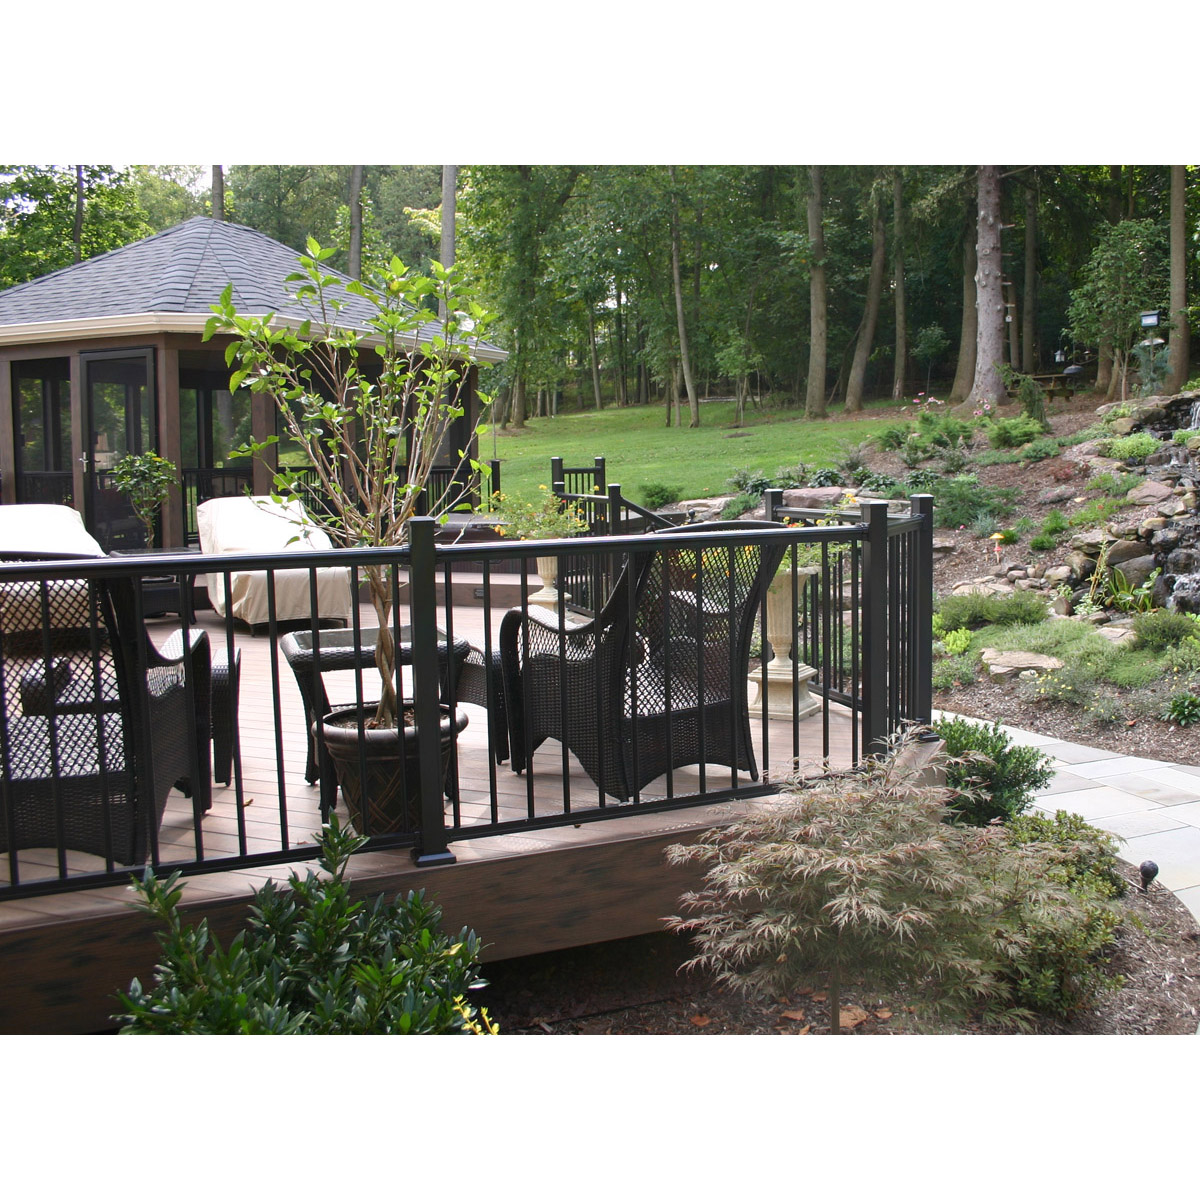 Arabian Railing with Round Balusters